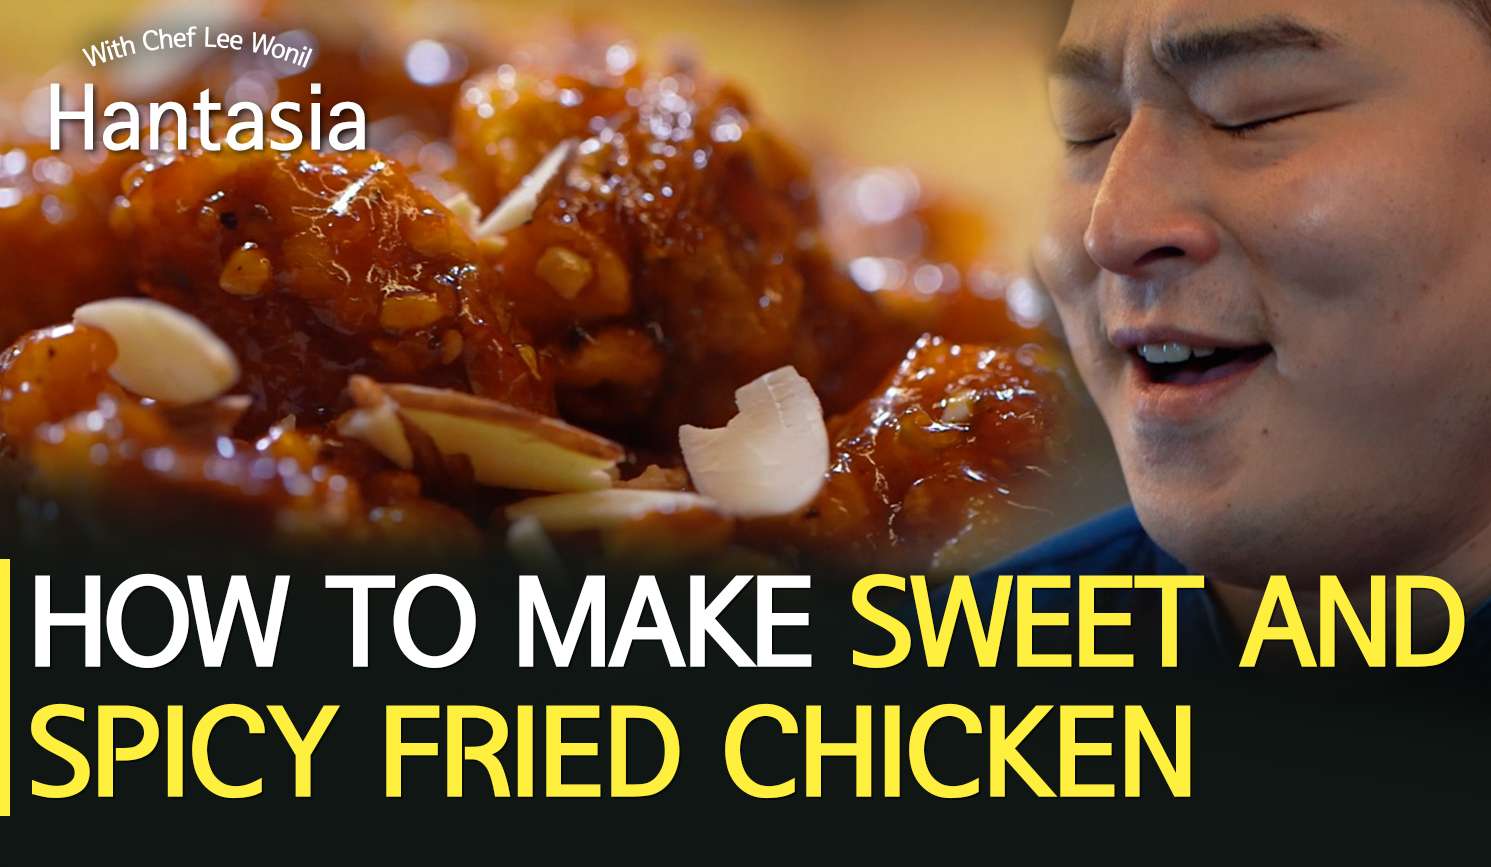 [Hantasia]How to make Sweet and spicy fried chicken